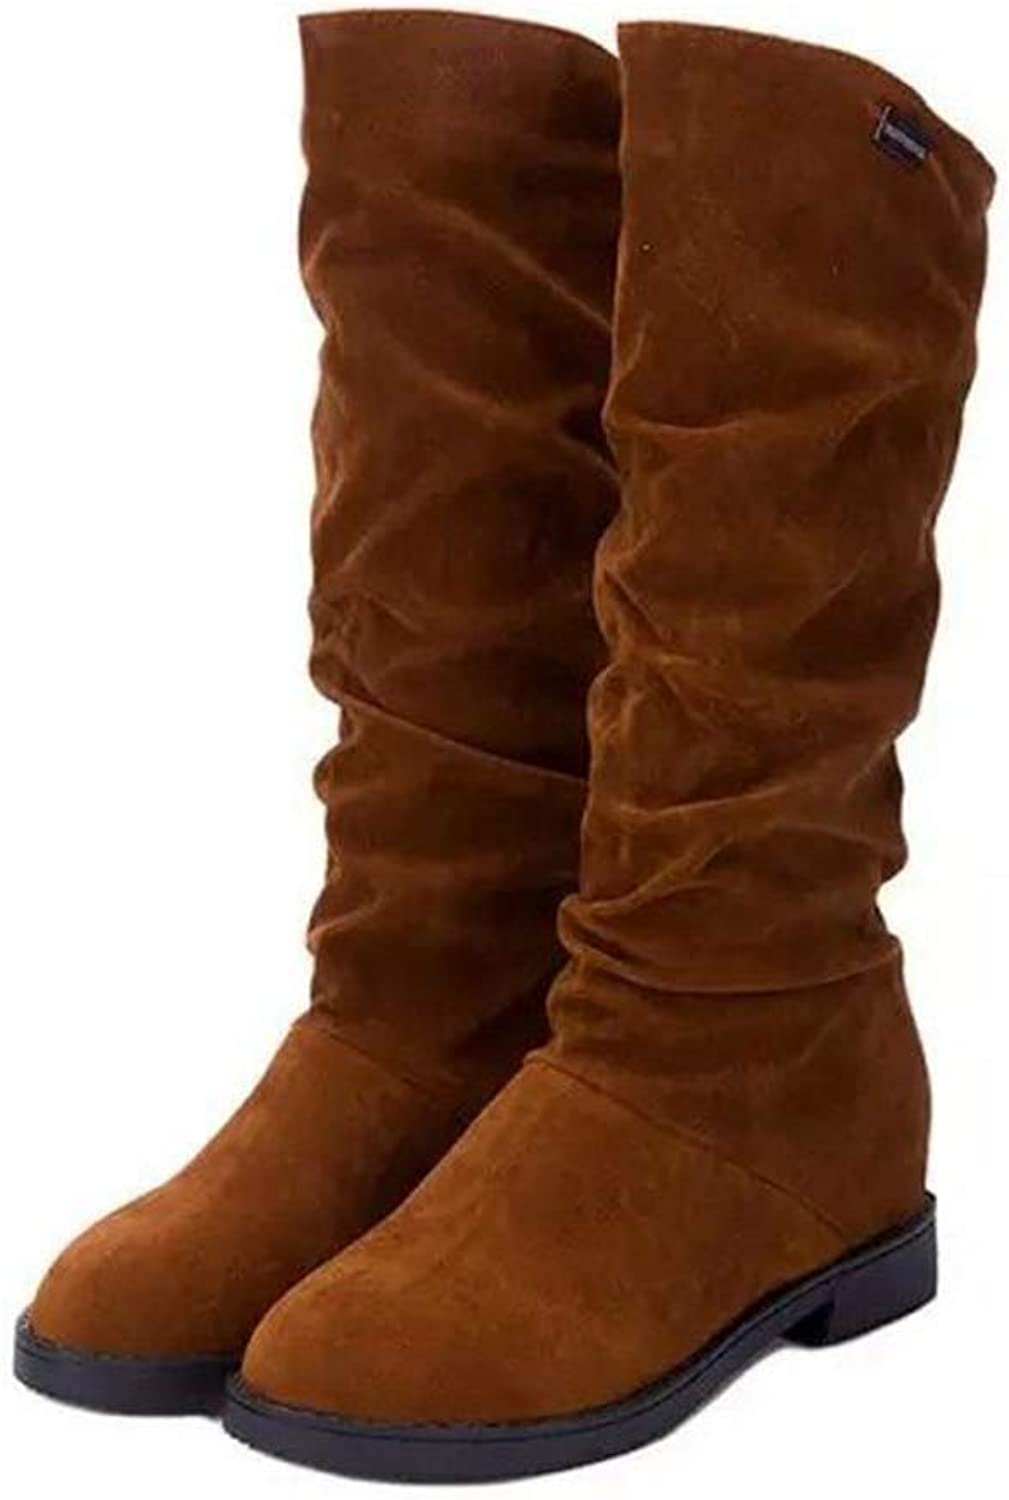 Jim Hugh Women Mid Calf Boots Height Increasing shoes Round Toe Fashion Winter Footwear